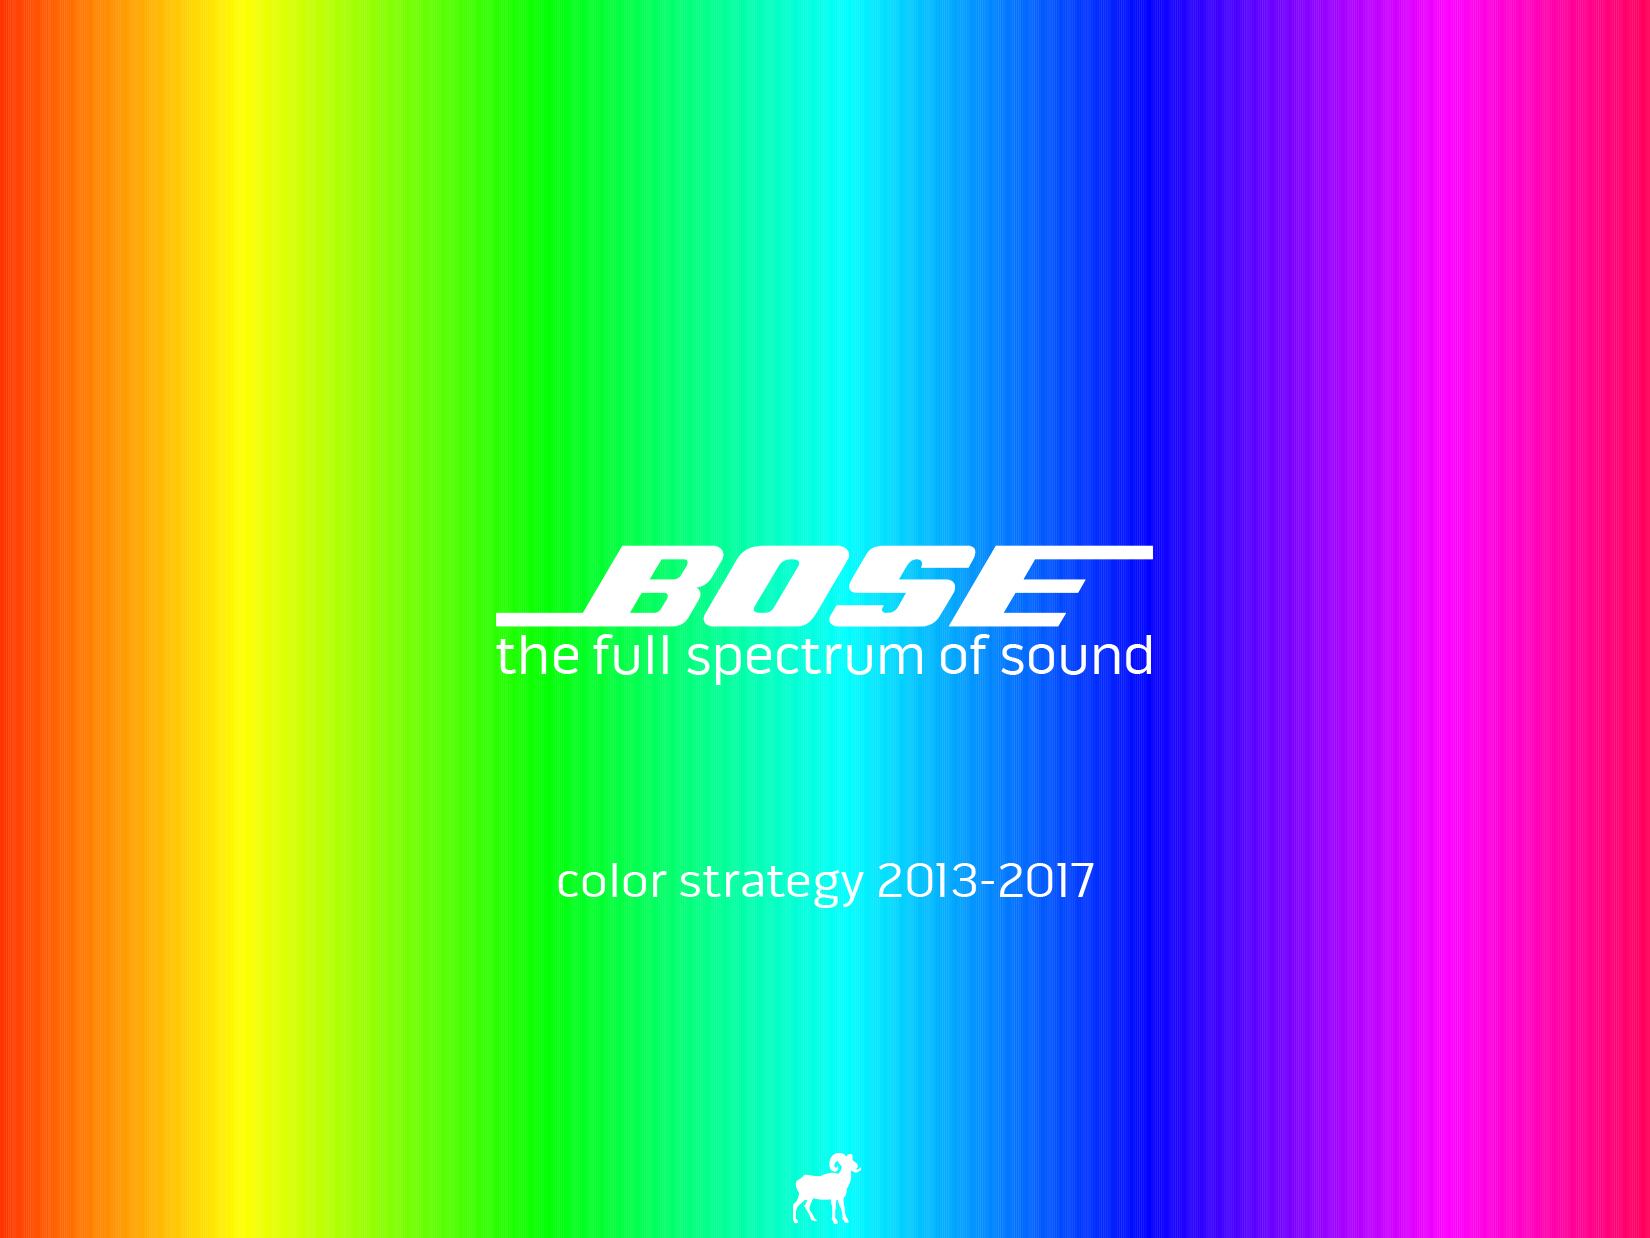 ram-industrial-design-Bose-Color-Strategy-Rob-Englert-Don-Carr-Meyer-Giordano.jpg